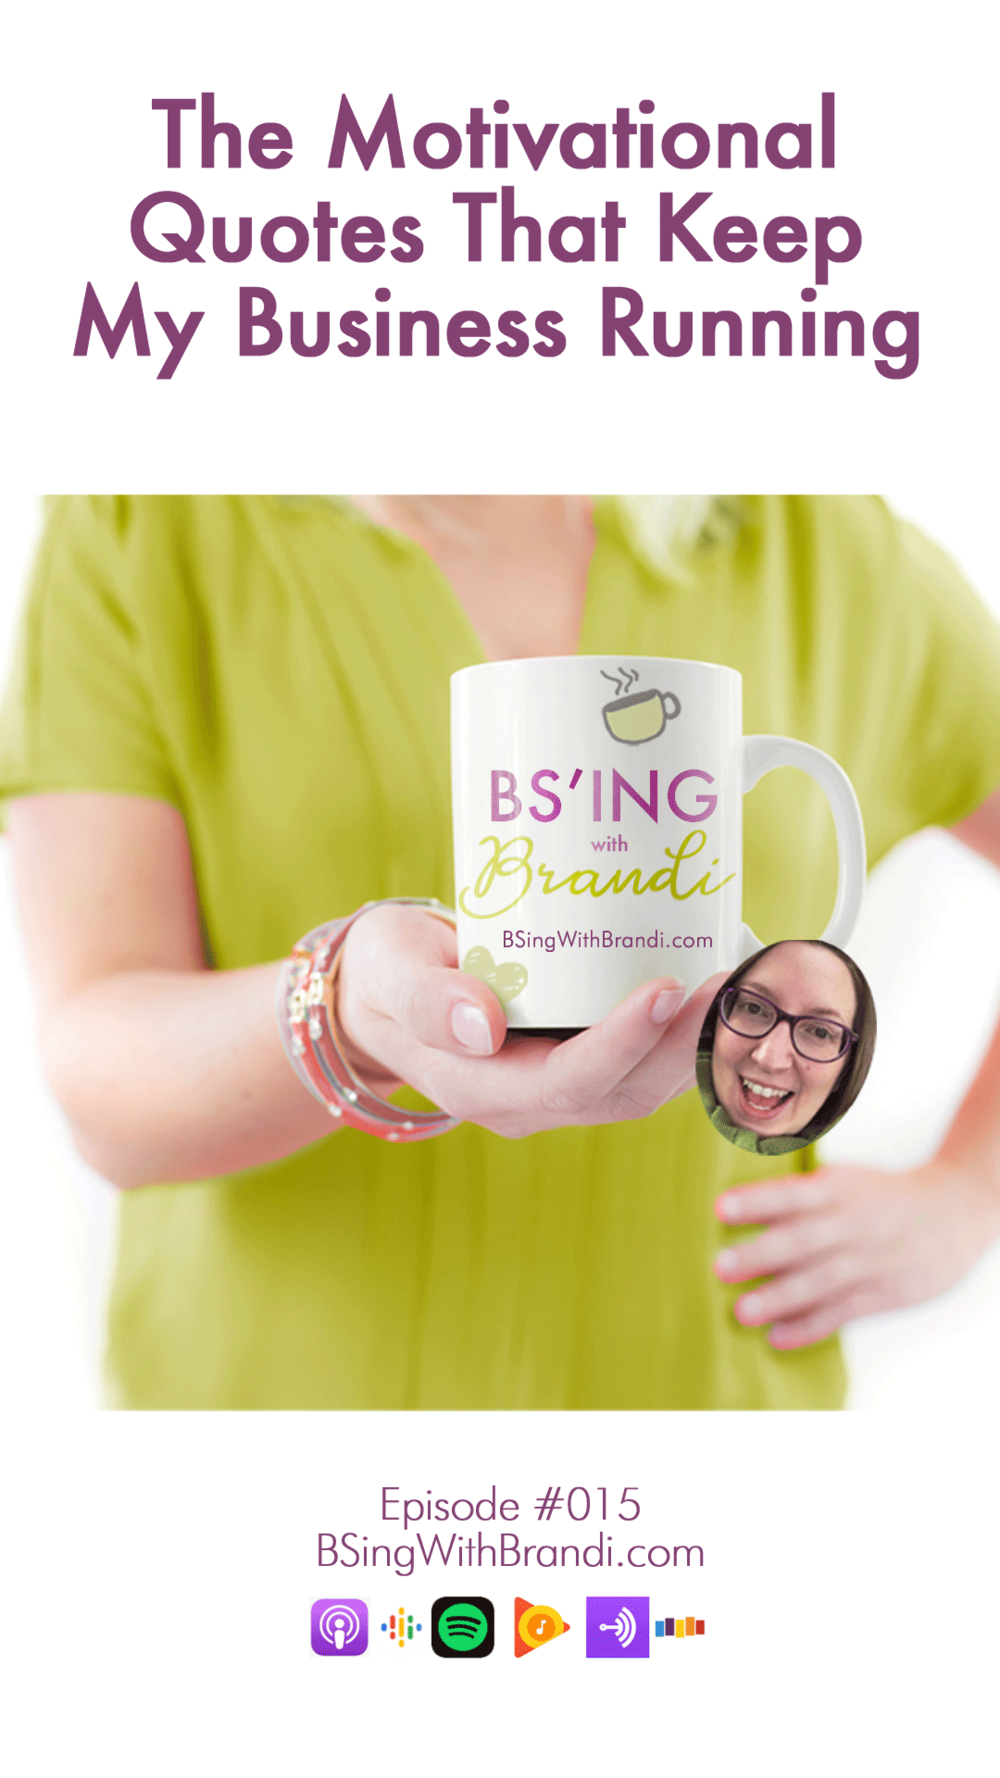 Welcome to BS'ing with Brandi where my mission is to help you #GetShitDone. I'm your host Brandi Good and today I'm going to share some quotes with you that have been particularly helpful throughout my entrepreneurial journey.